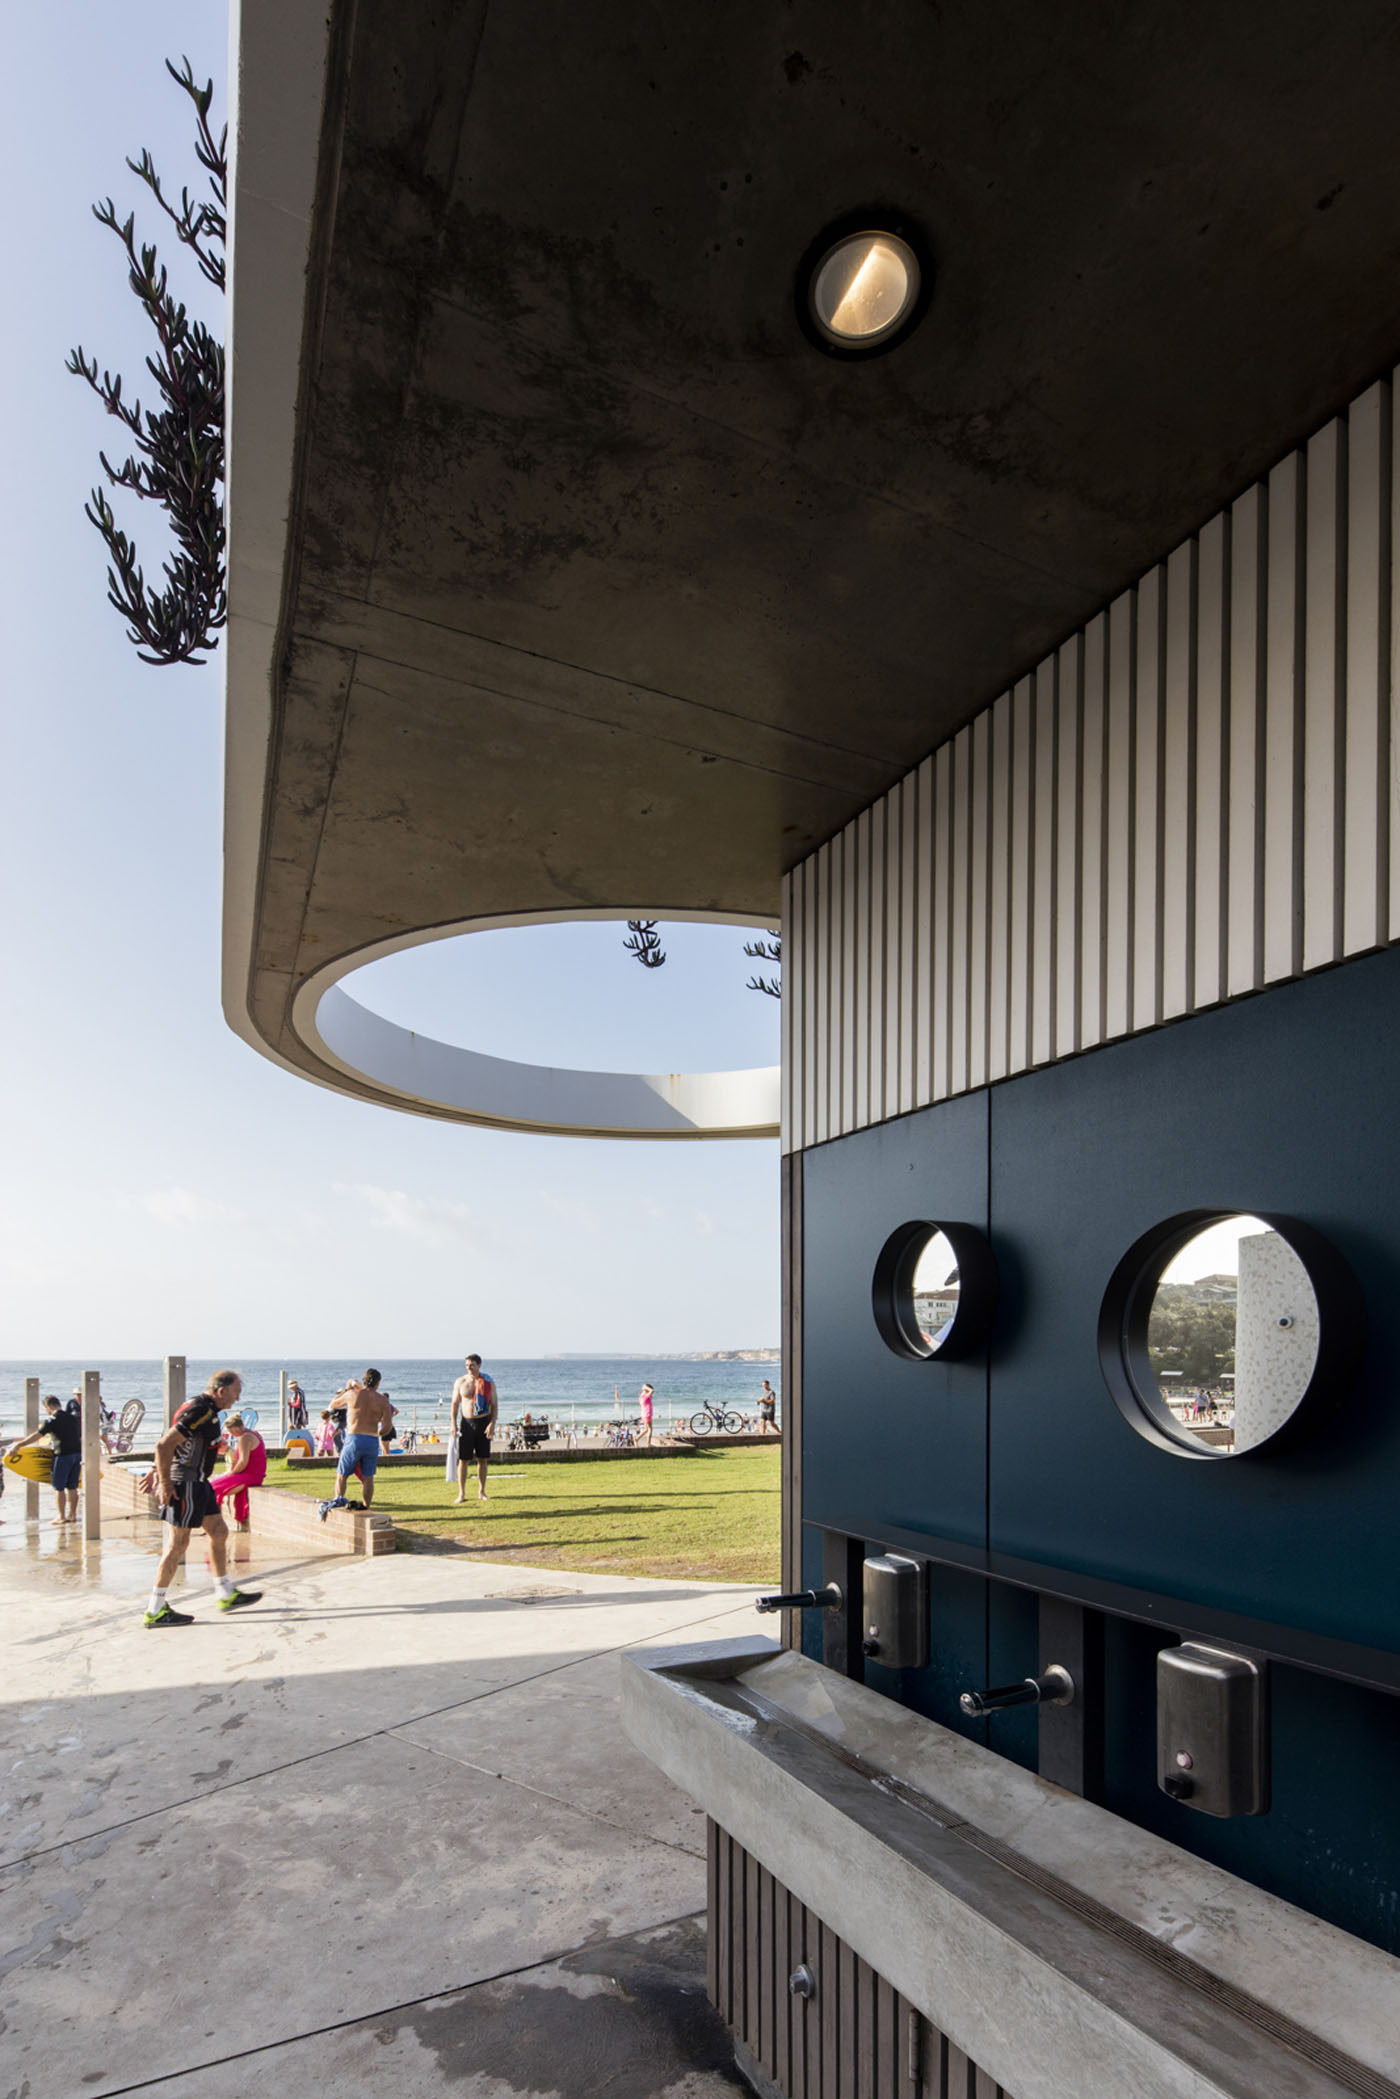 North Bondi Amenities, a public project by award winning Sam Crawford Architects. View out to the beach from the hand basins.